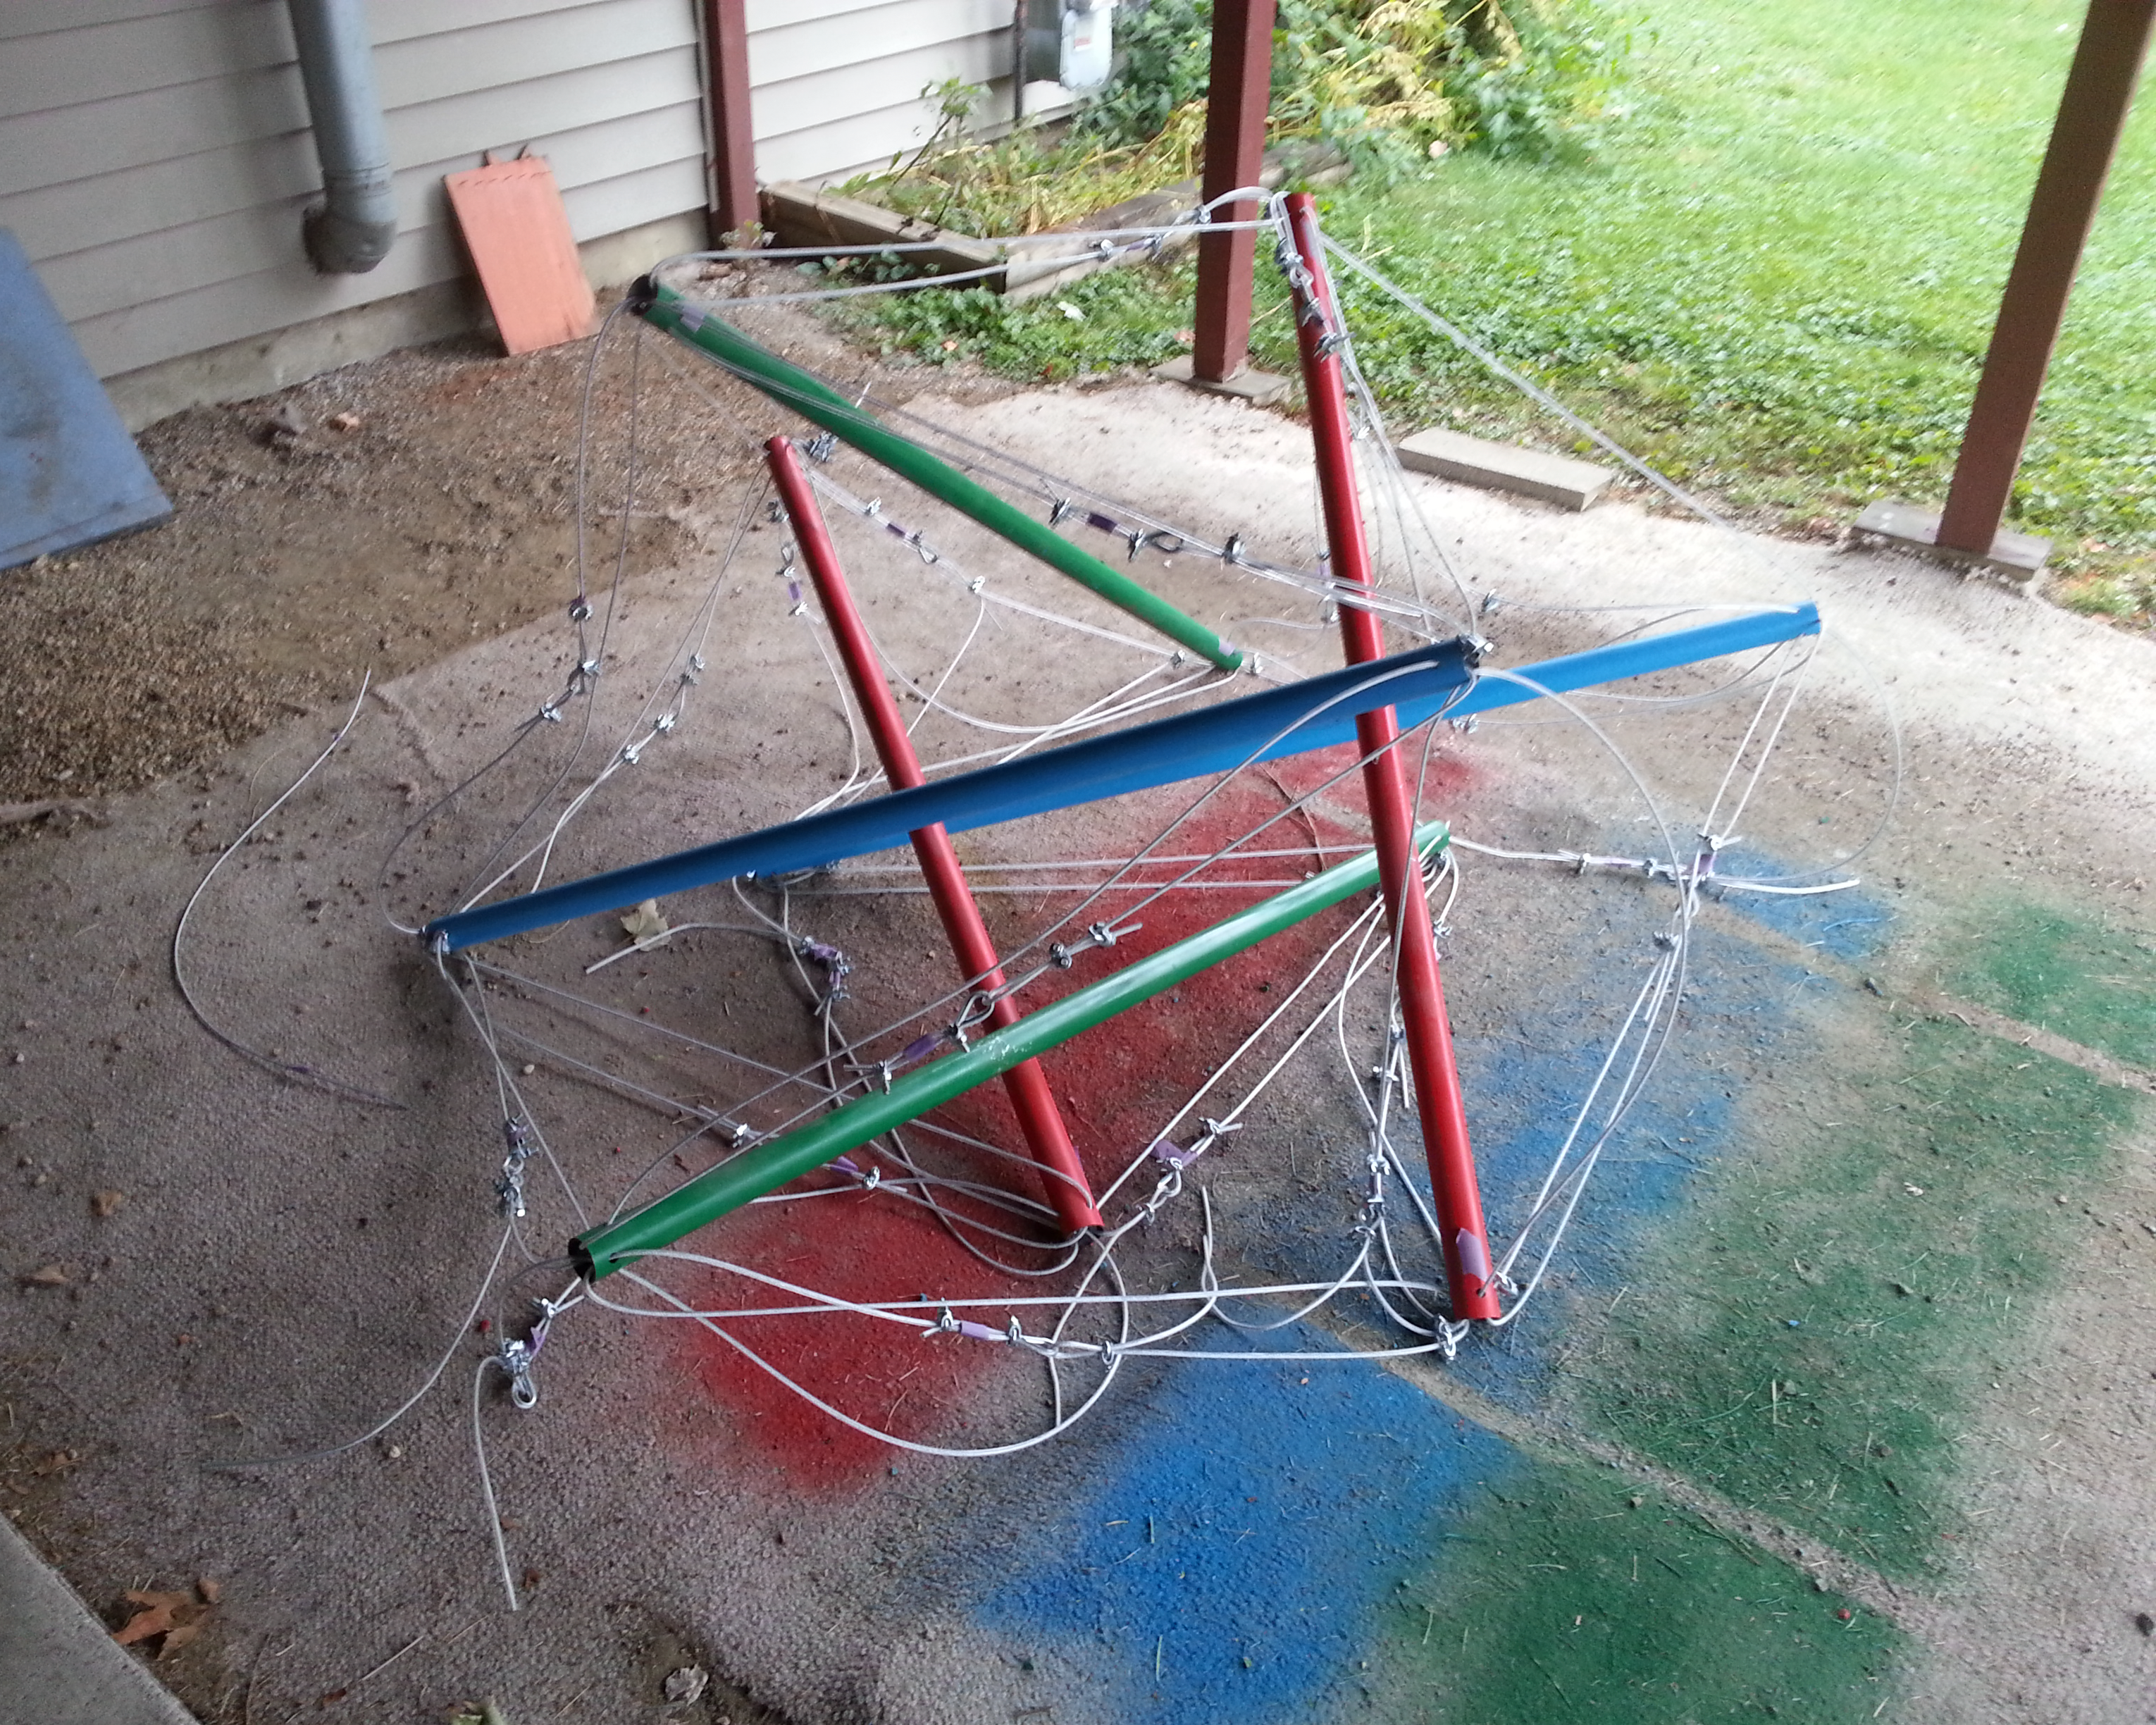 Partially assembled tensegrity by SmilingY